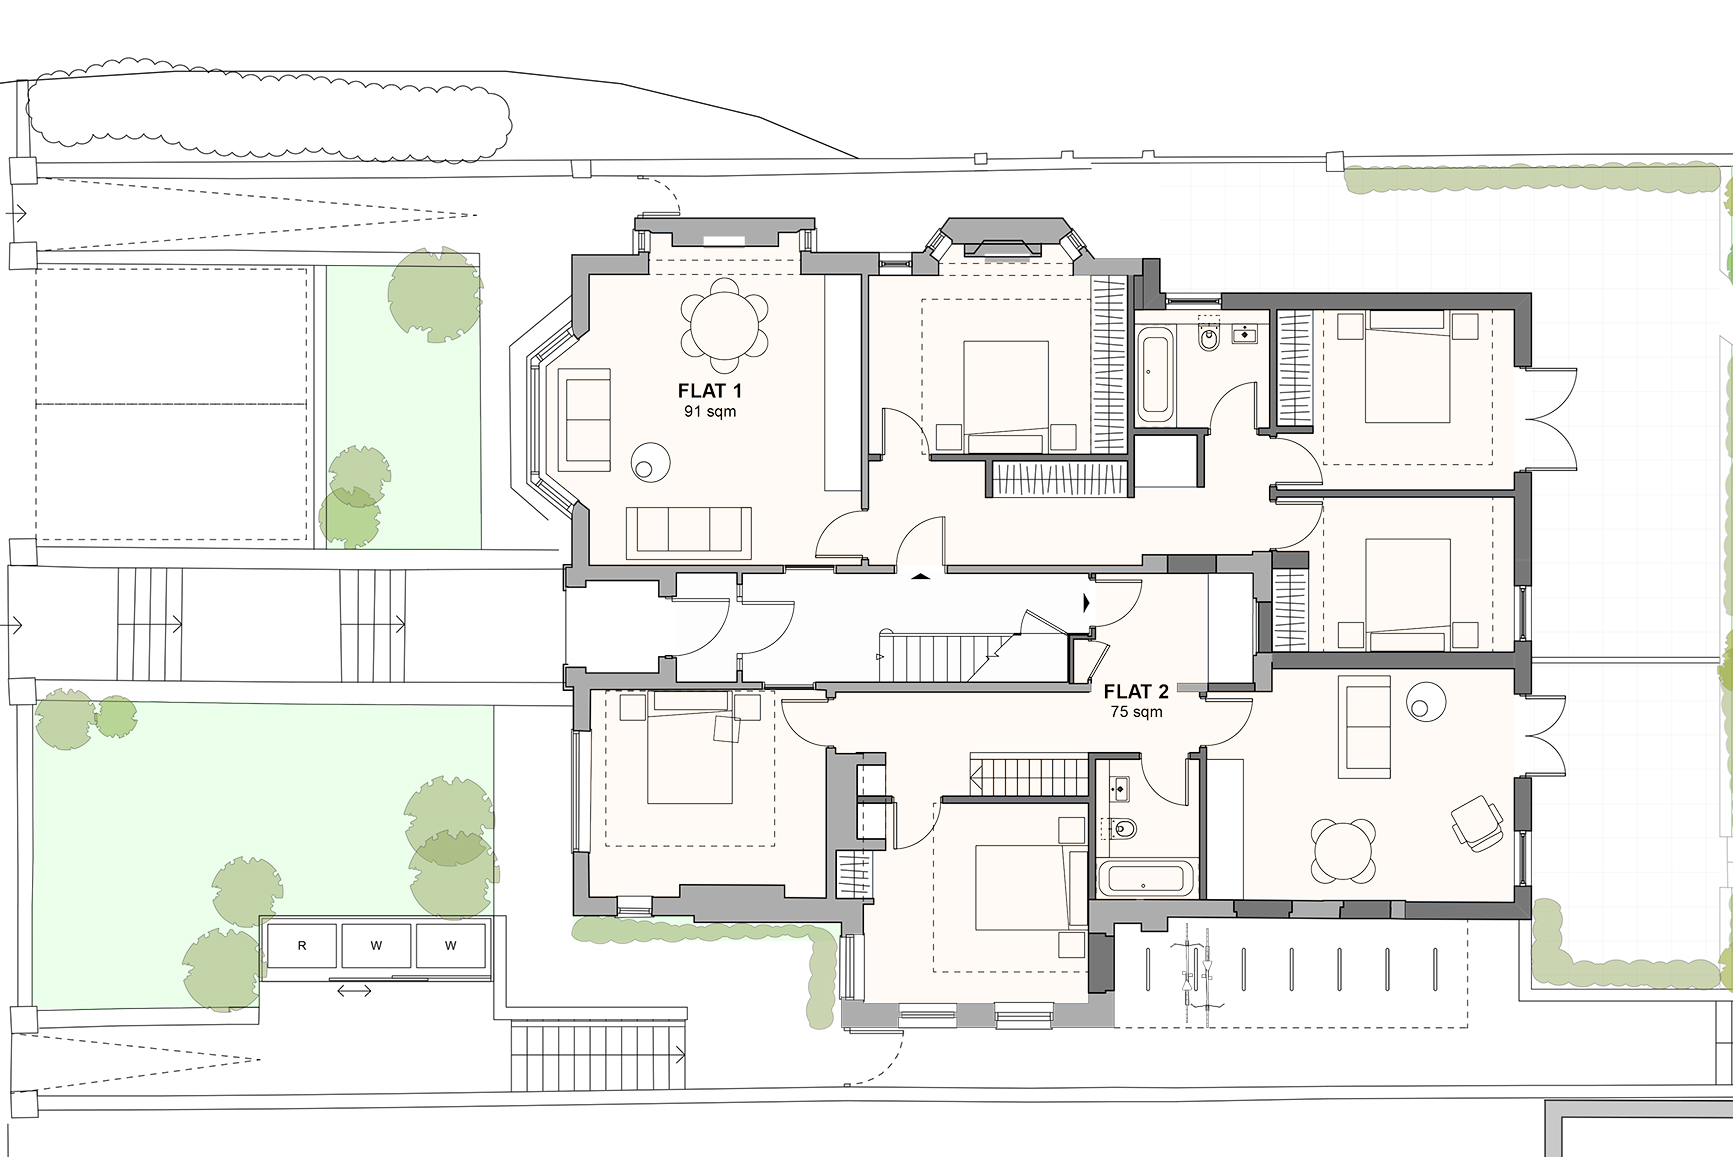 Proposed Ground Floor Plan